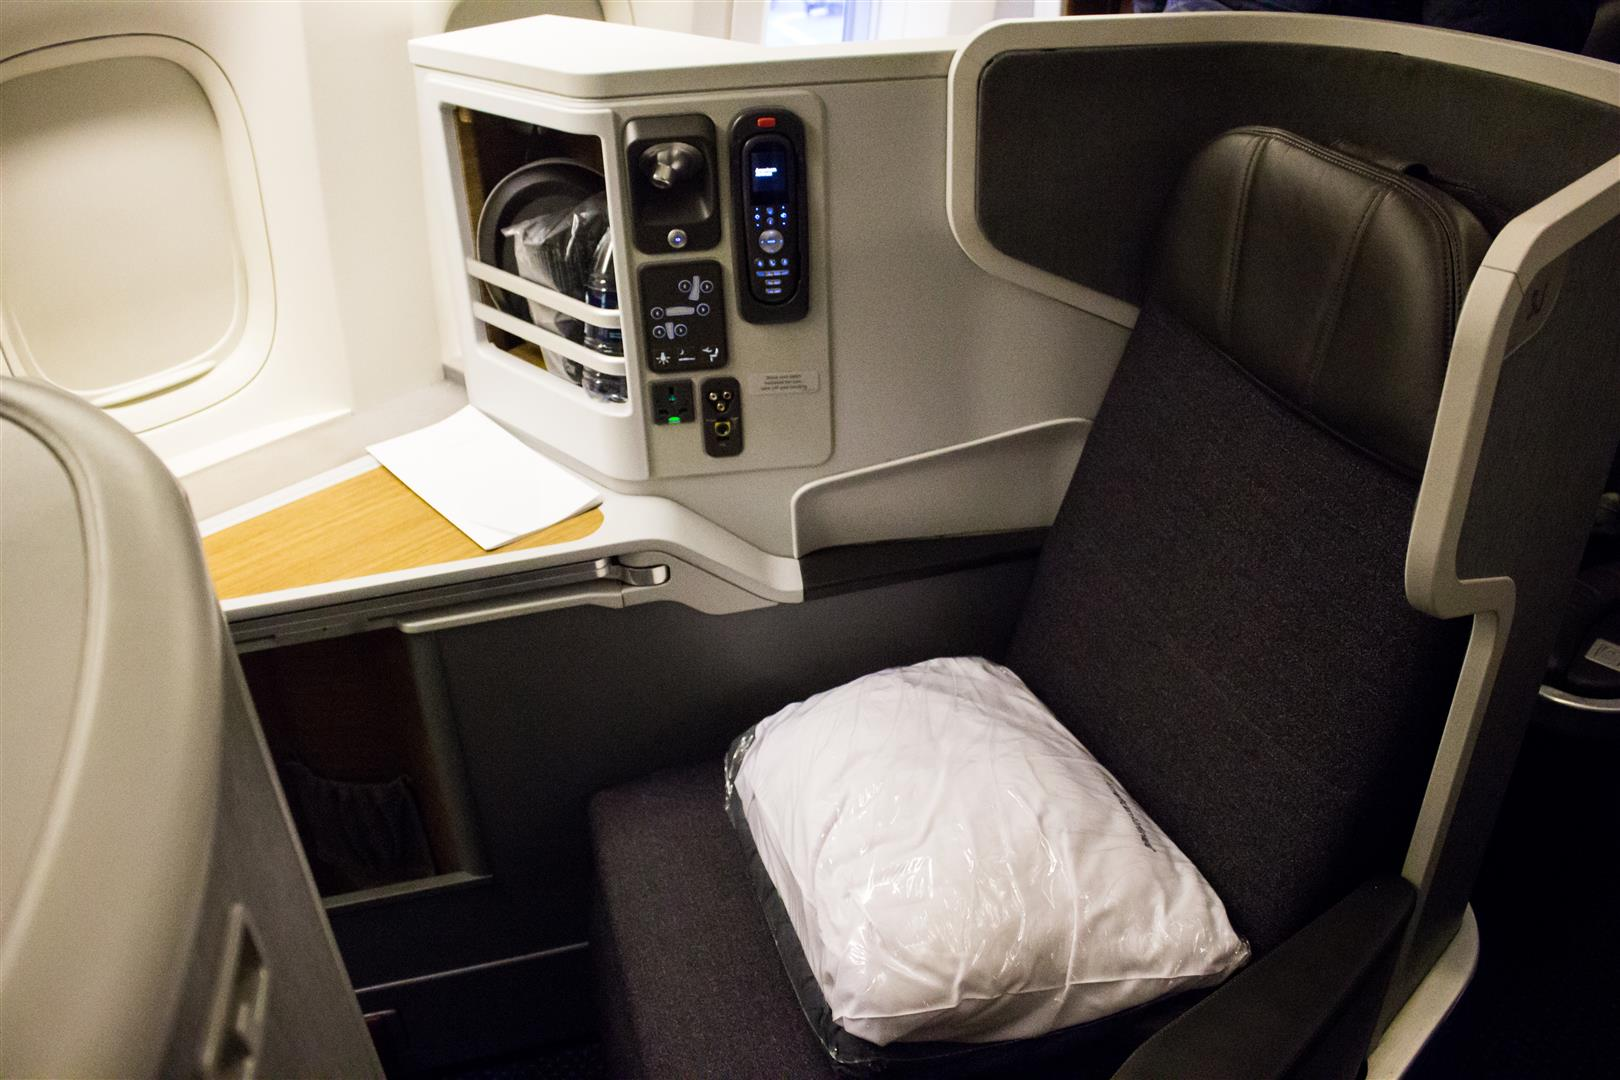 The AA Flagship Business Class Seat